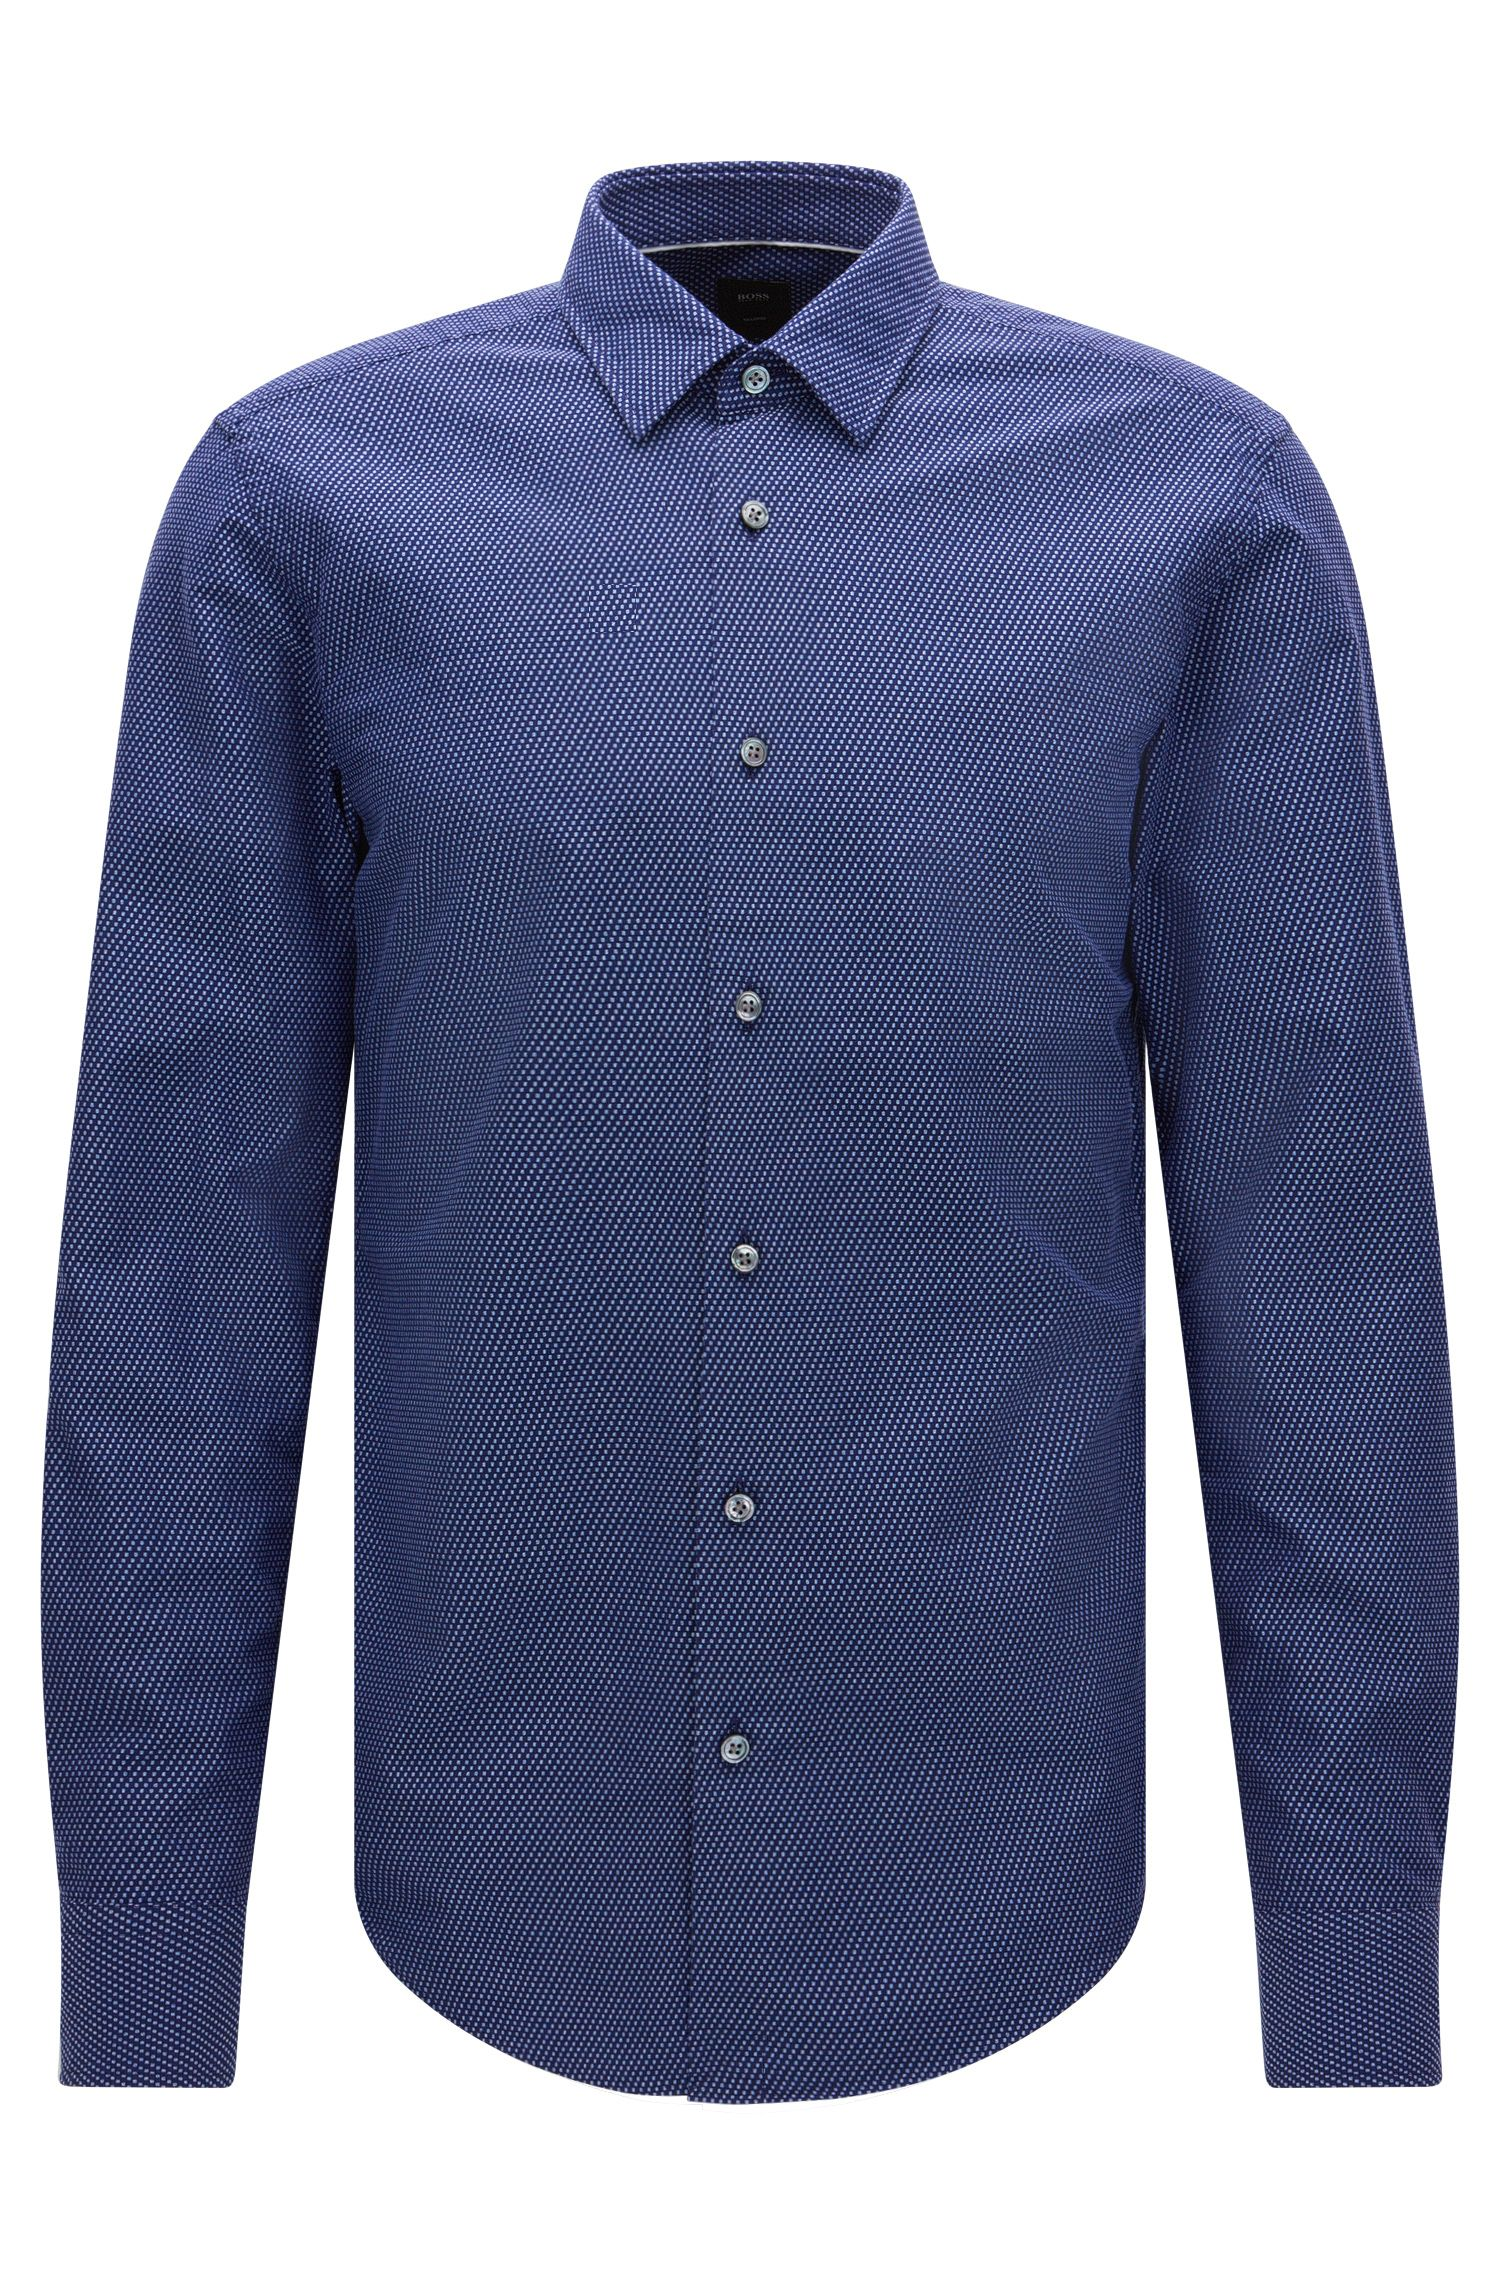 Italian Cotton Button Down Shirt, Slim Fit | T-Riccardo F